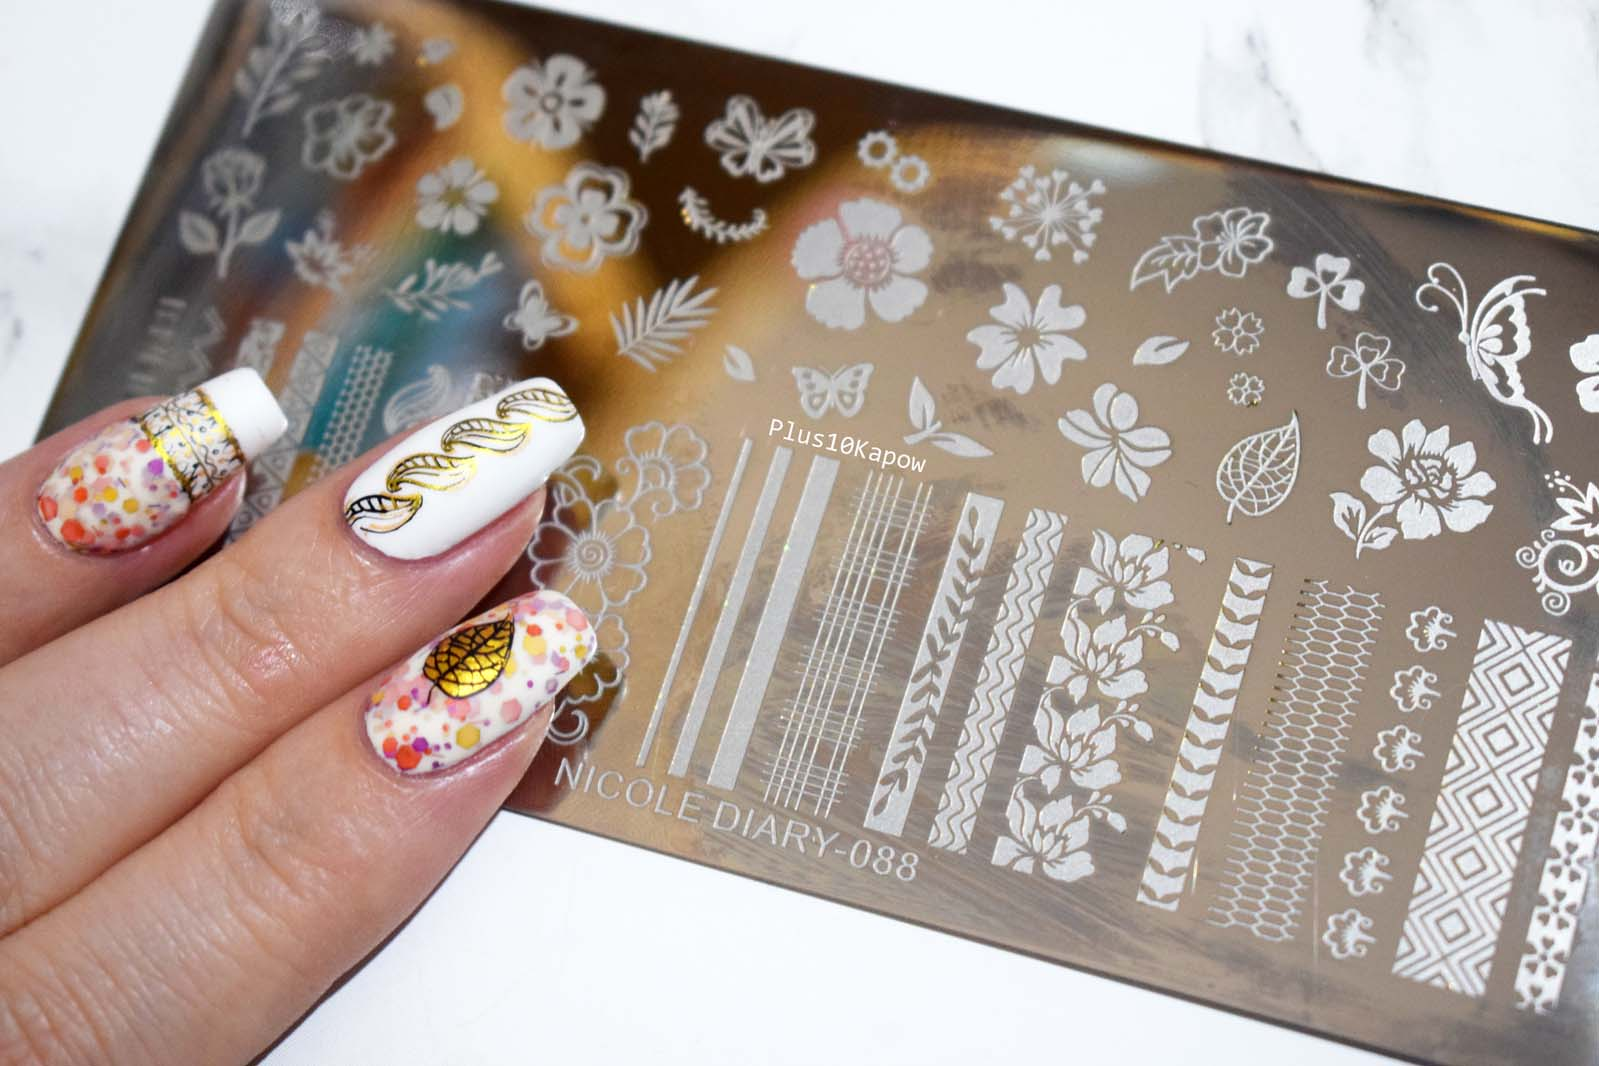 Nicole Diary 088 stamping plate